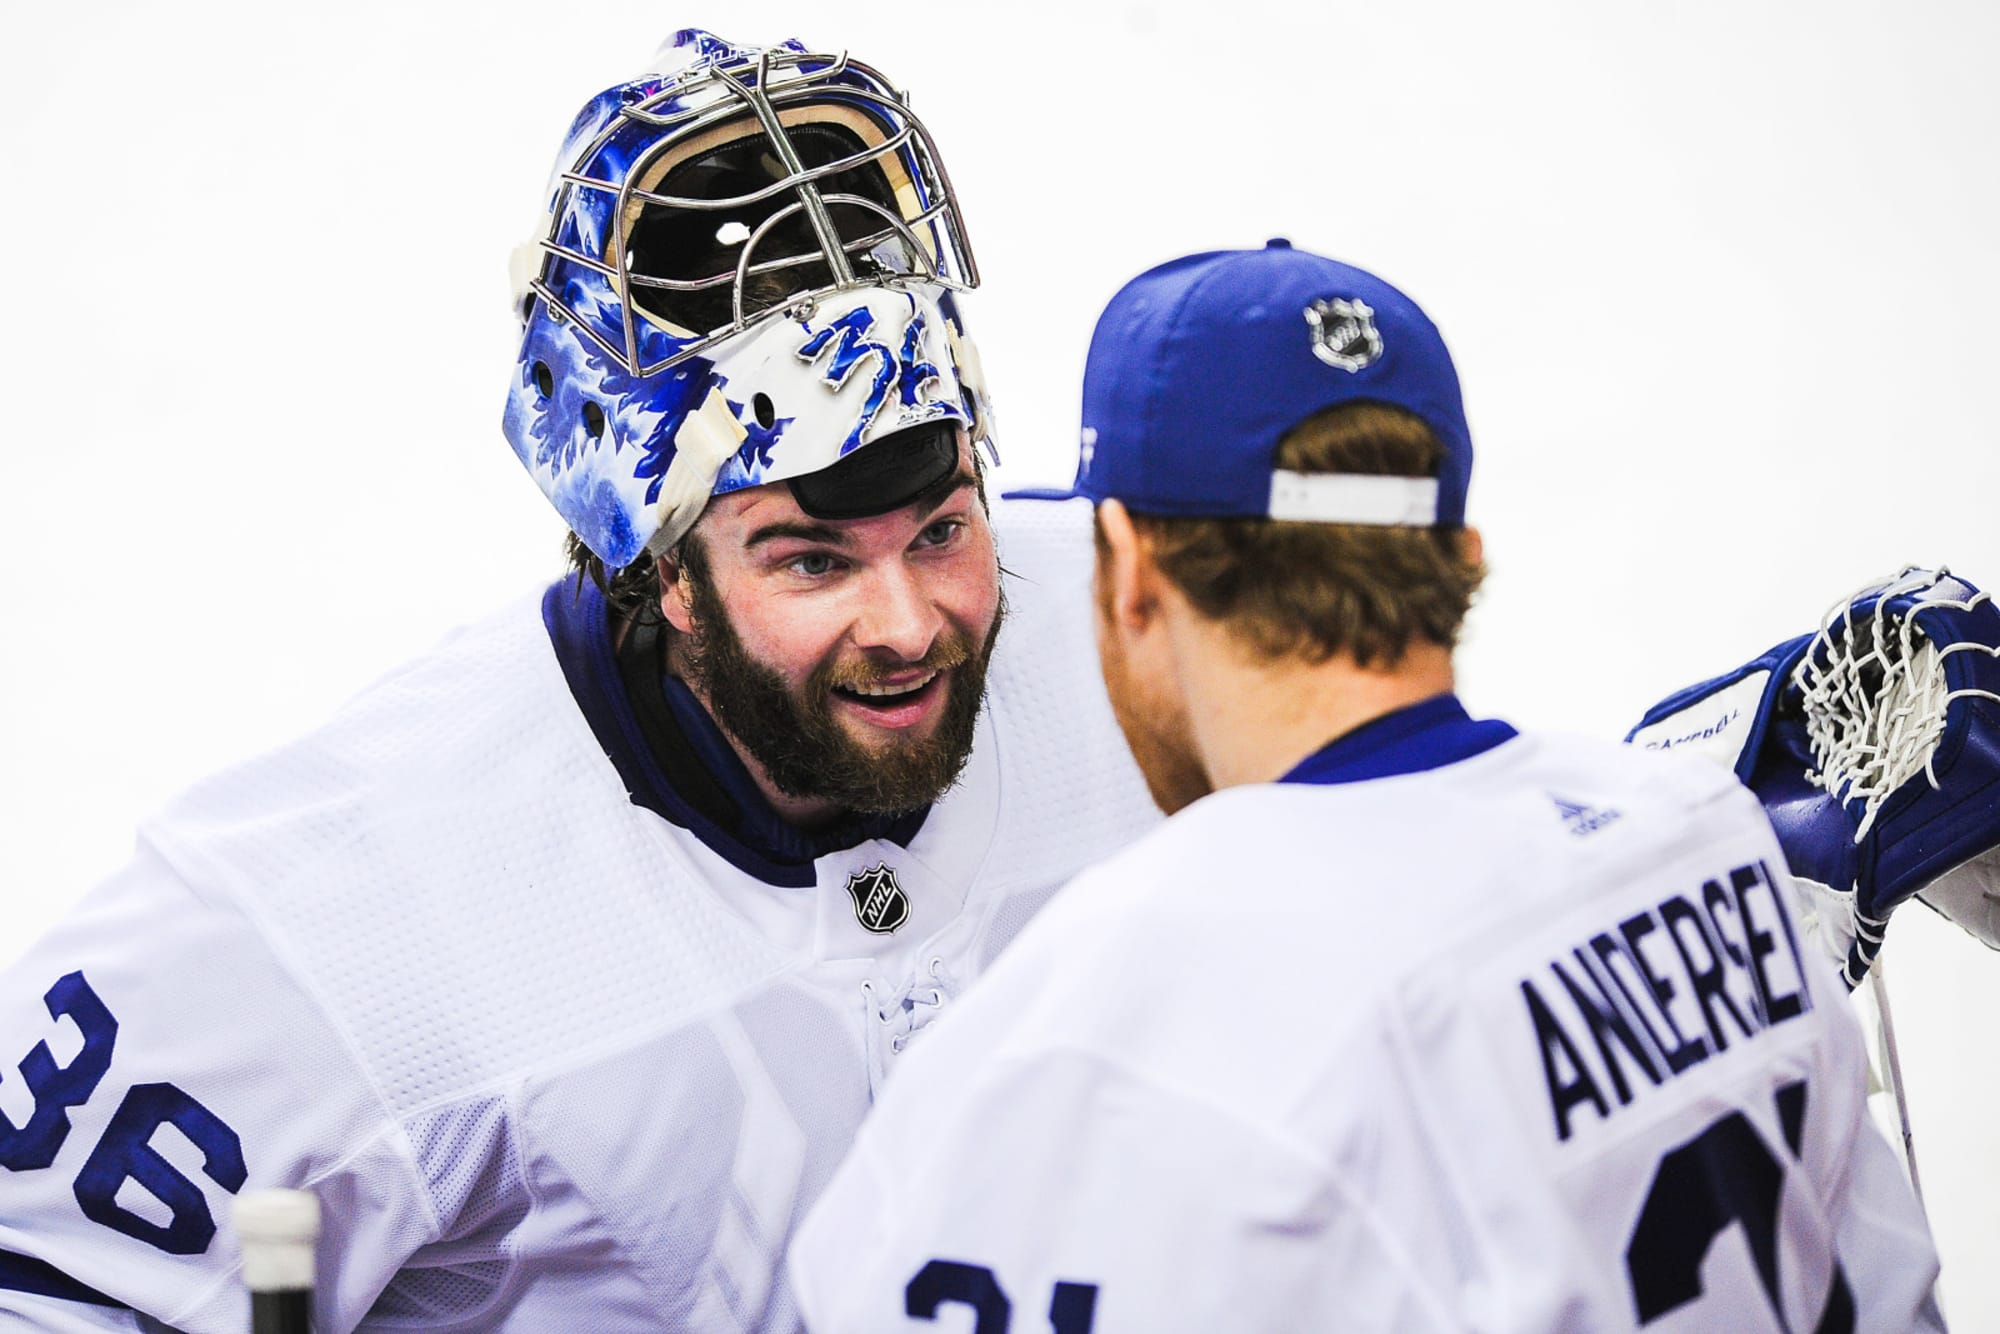 Toronto Maple Leafs Would Be Crazy to Risk Season on Freddie Andersen